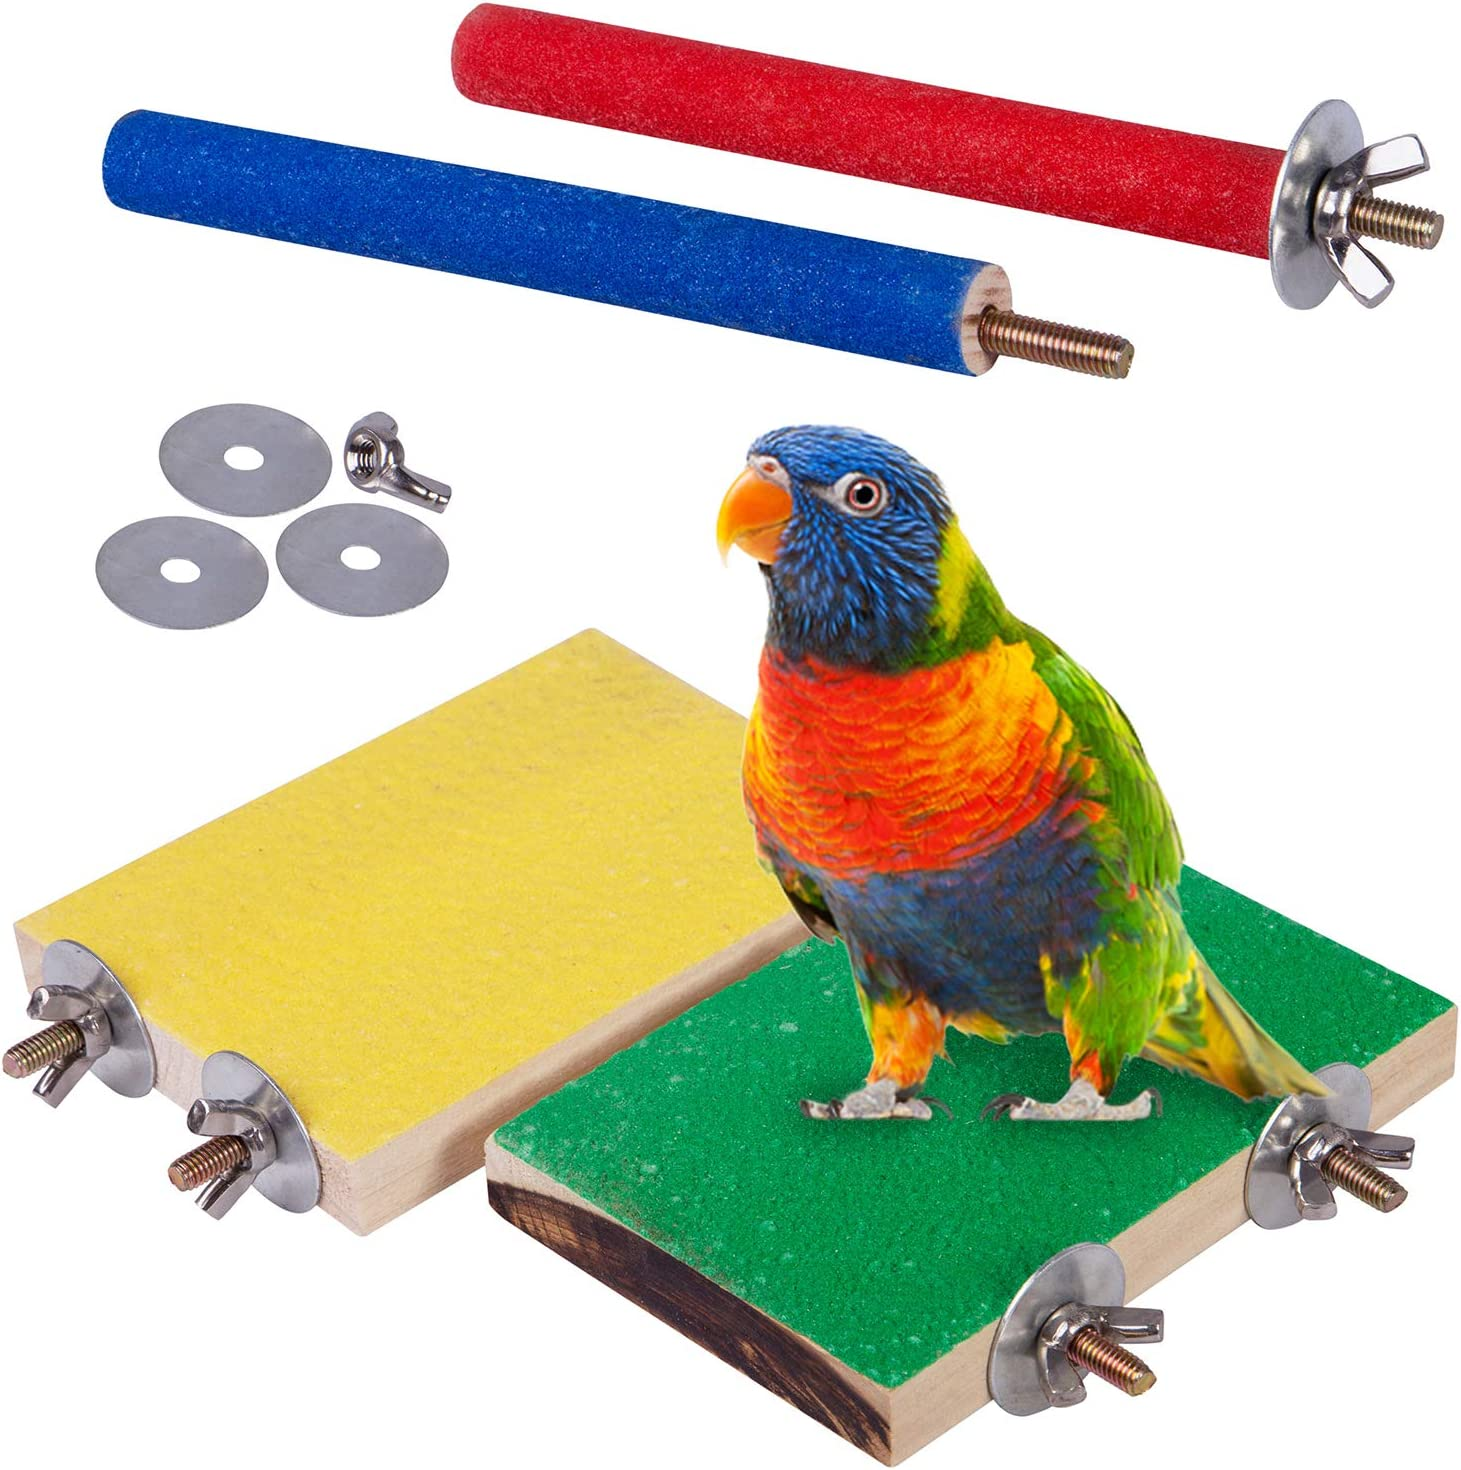 Wooden Parrot Bird Platform Perch Stand for Budgie Conure Parrot Cages Toys